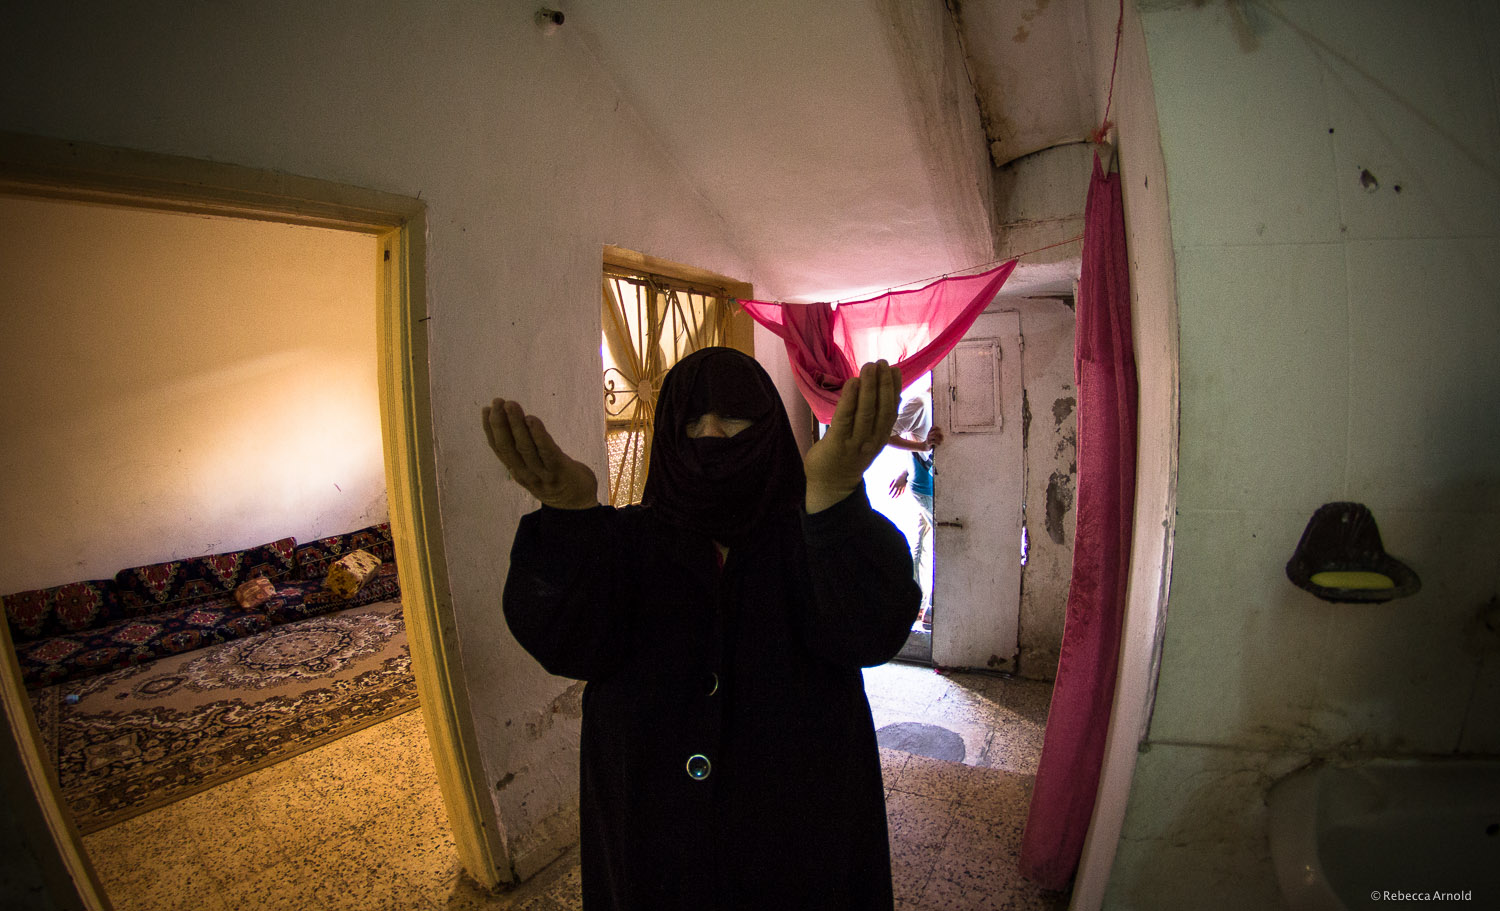 Syrian refugee mother, living in a 'squatter' home outside Amman, lost one of her sonsin the war. Zaqra, Jordan